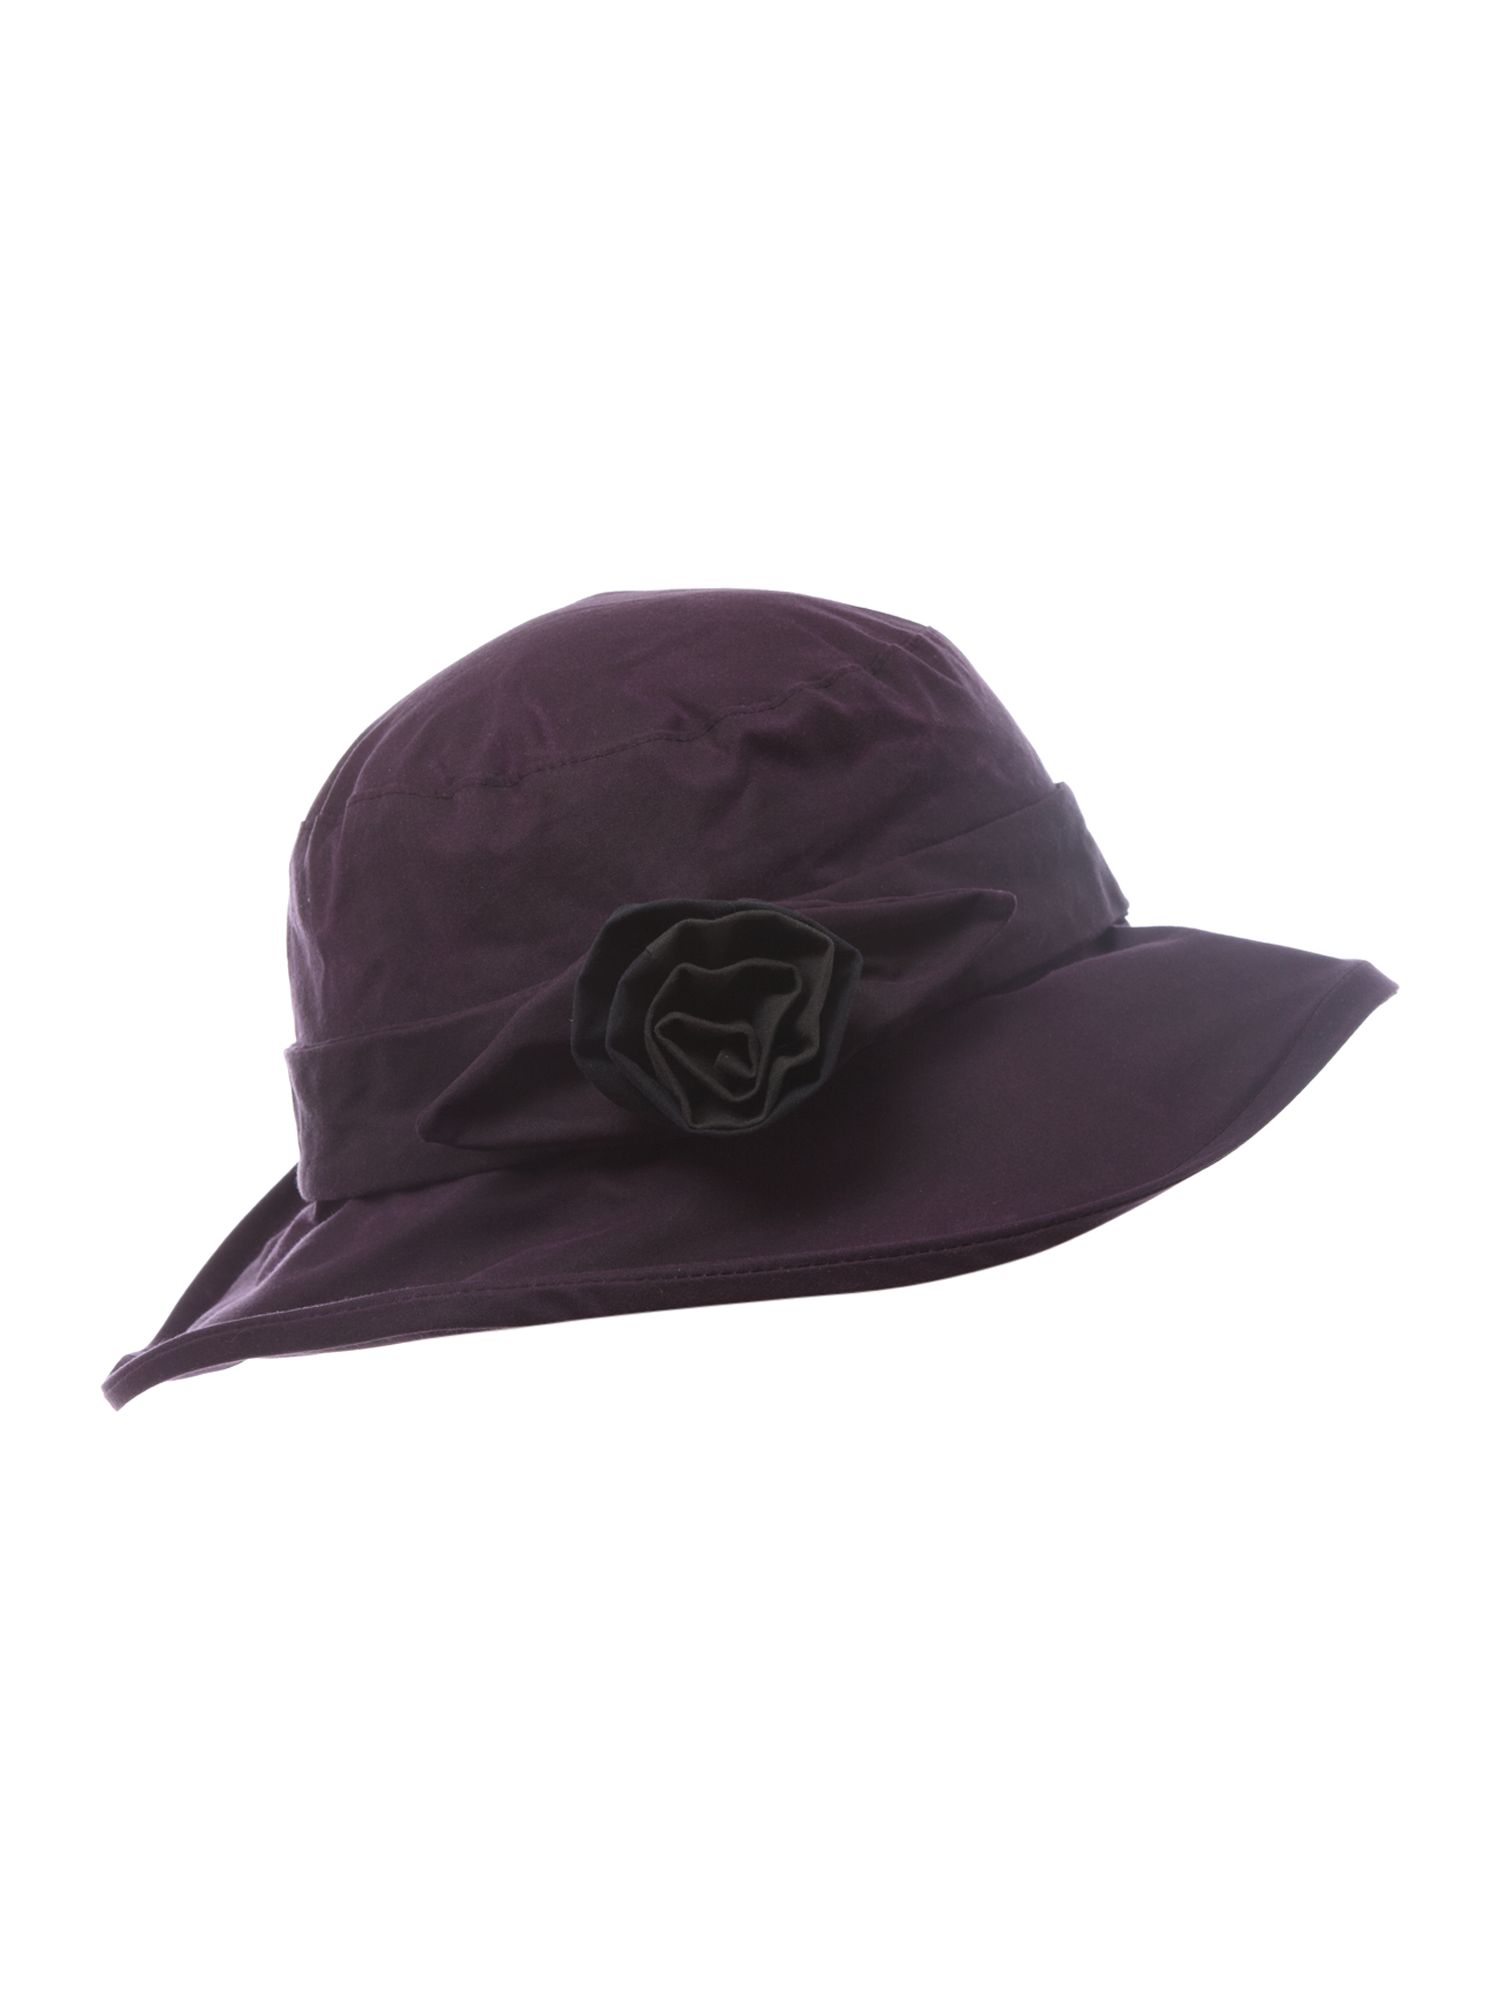 Ladies large wax with rose hat